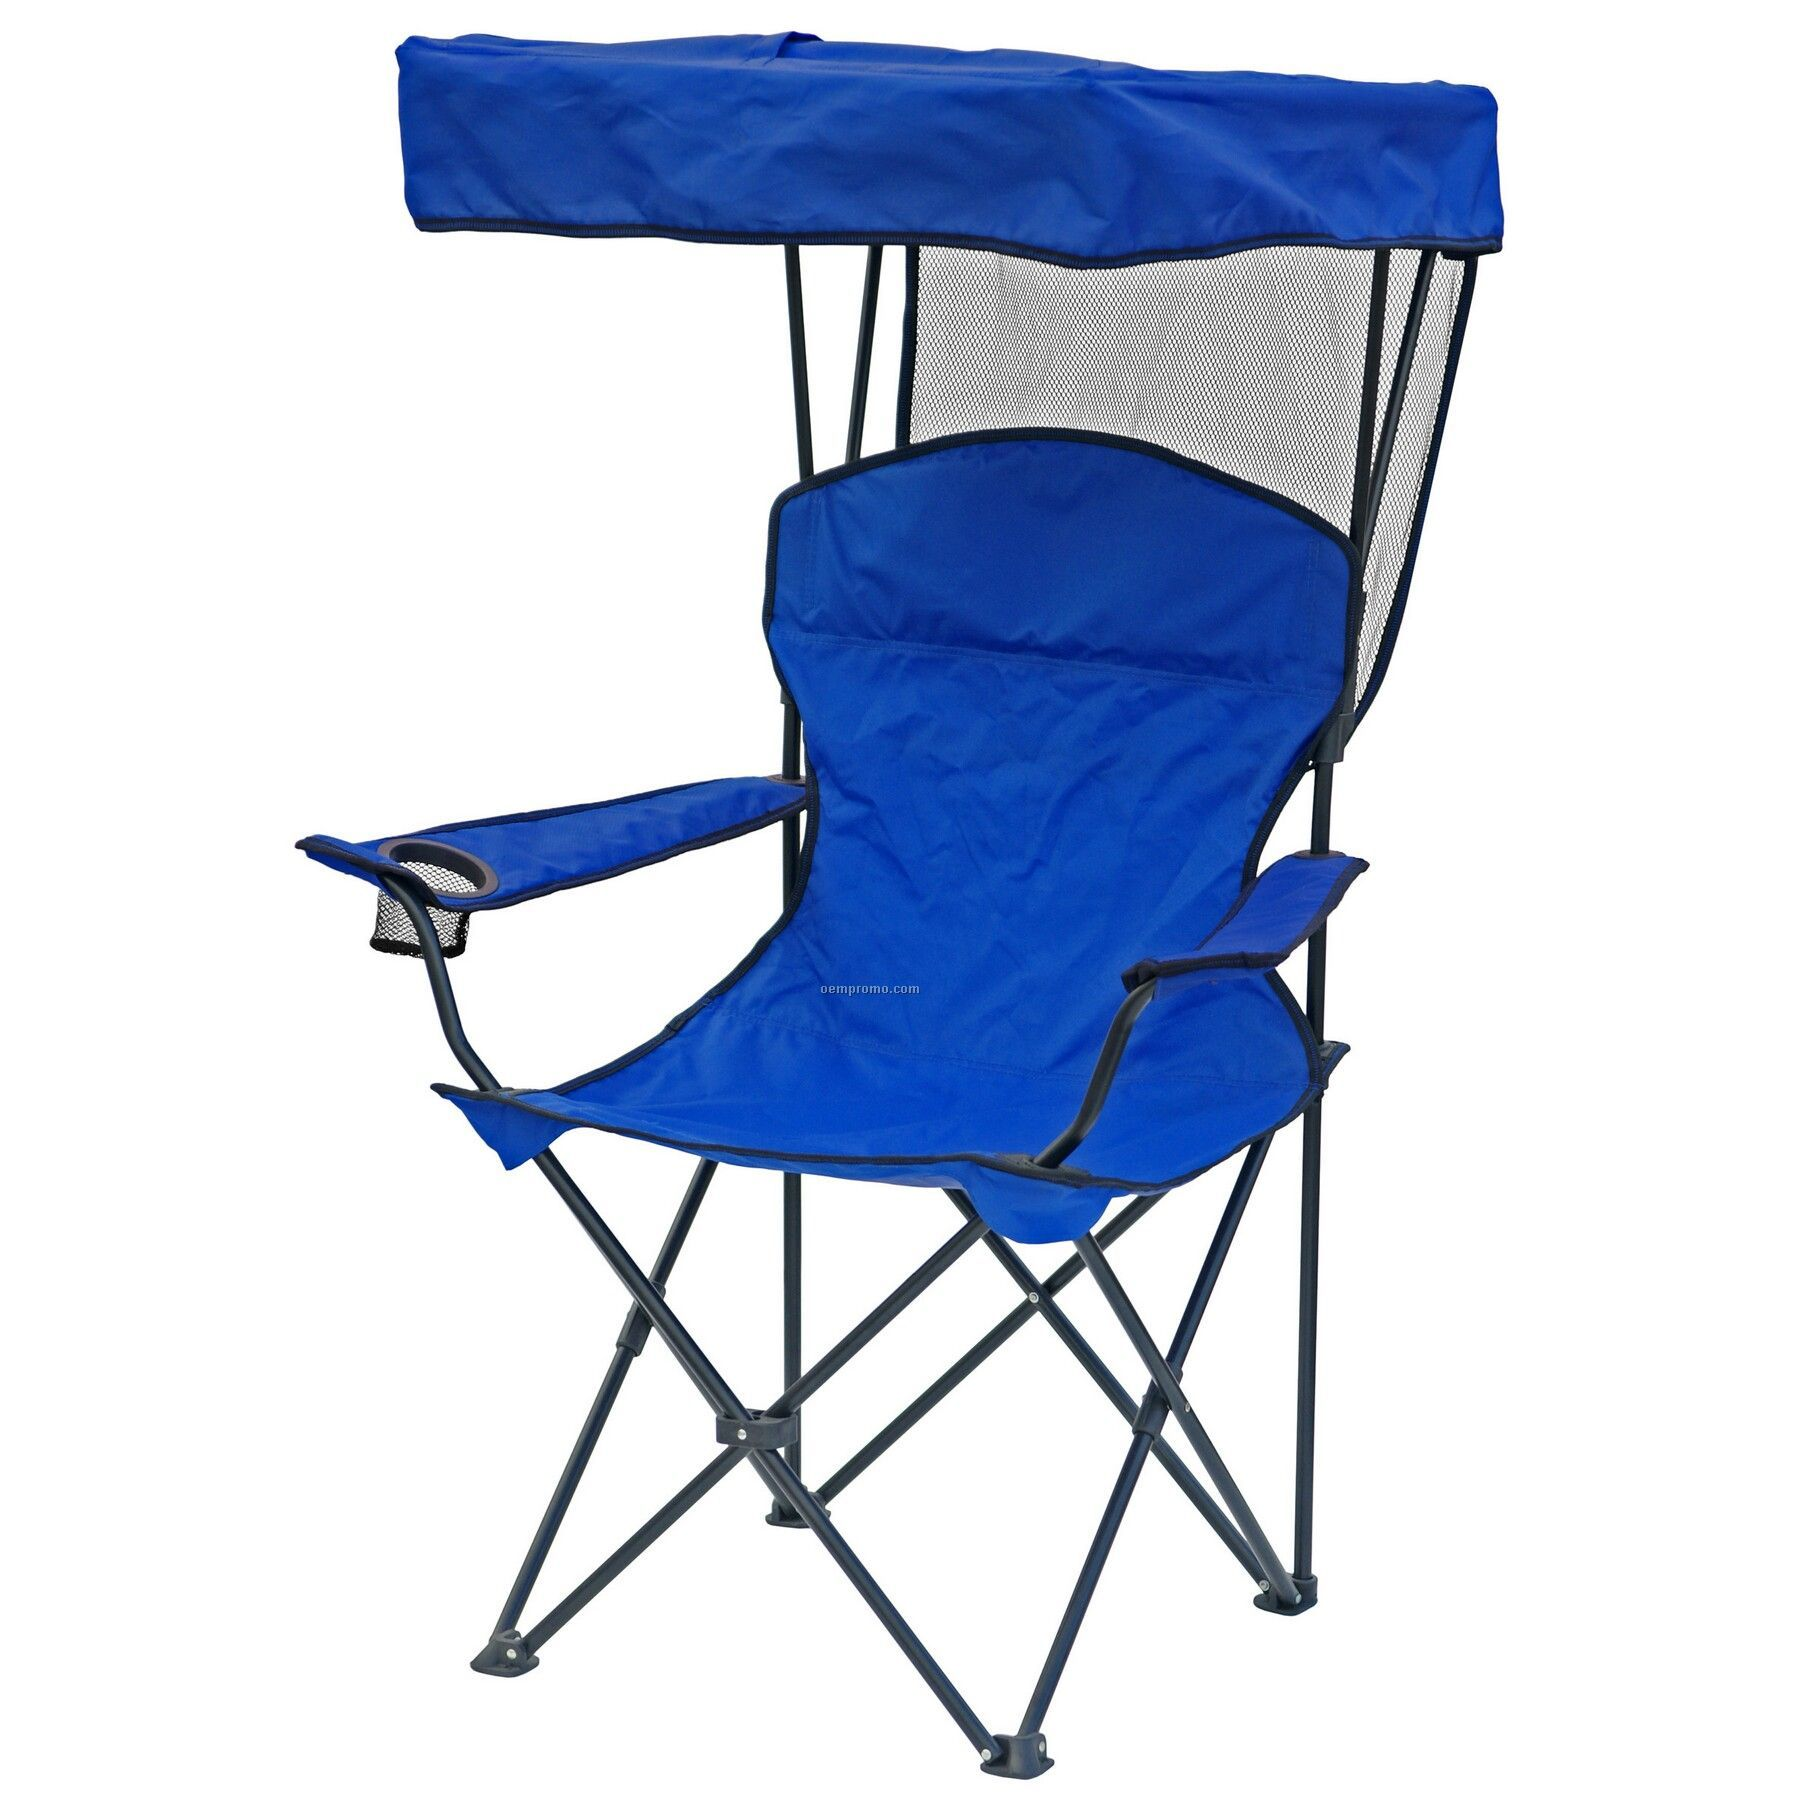 Outdoor Chair With Canopy Folding Chairs With Umbrella Rainwear